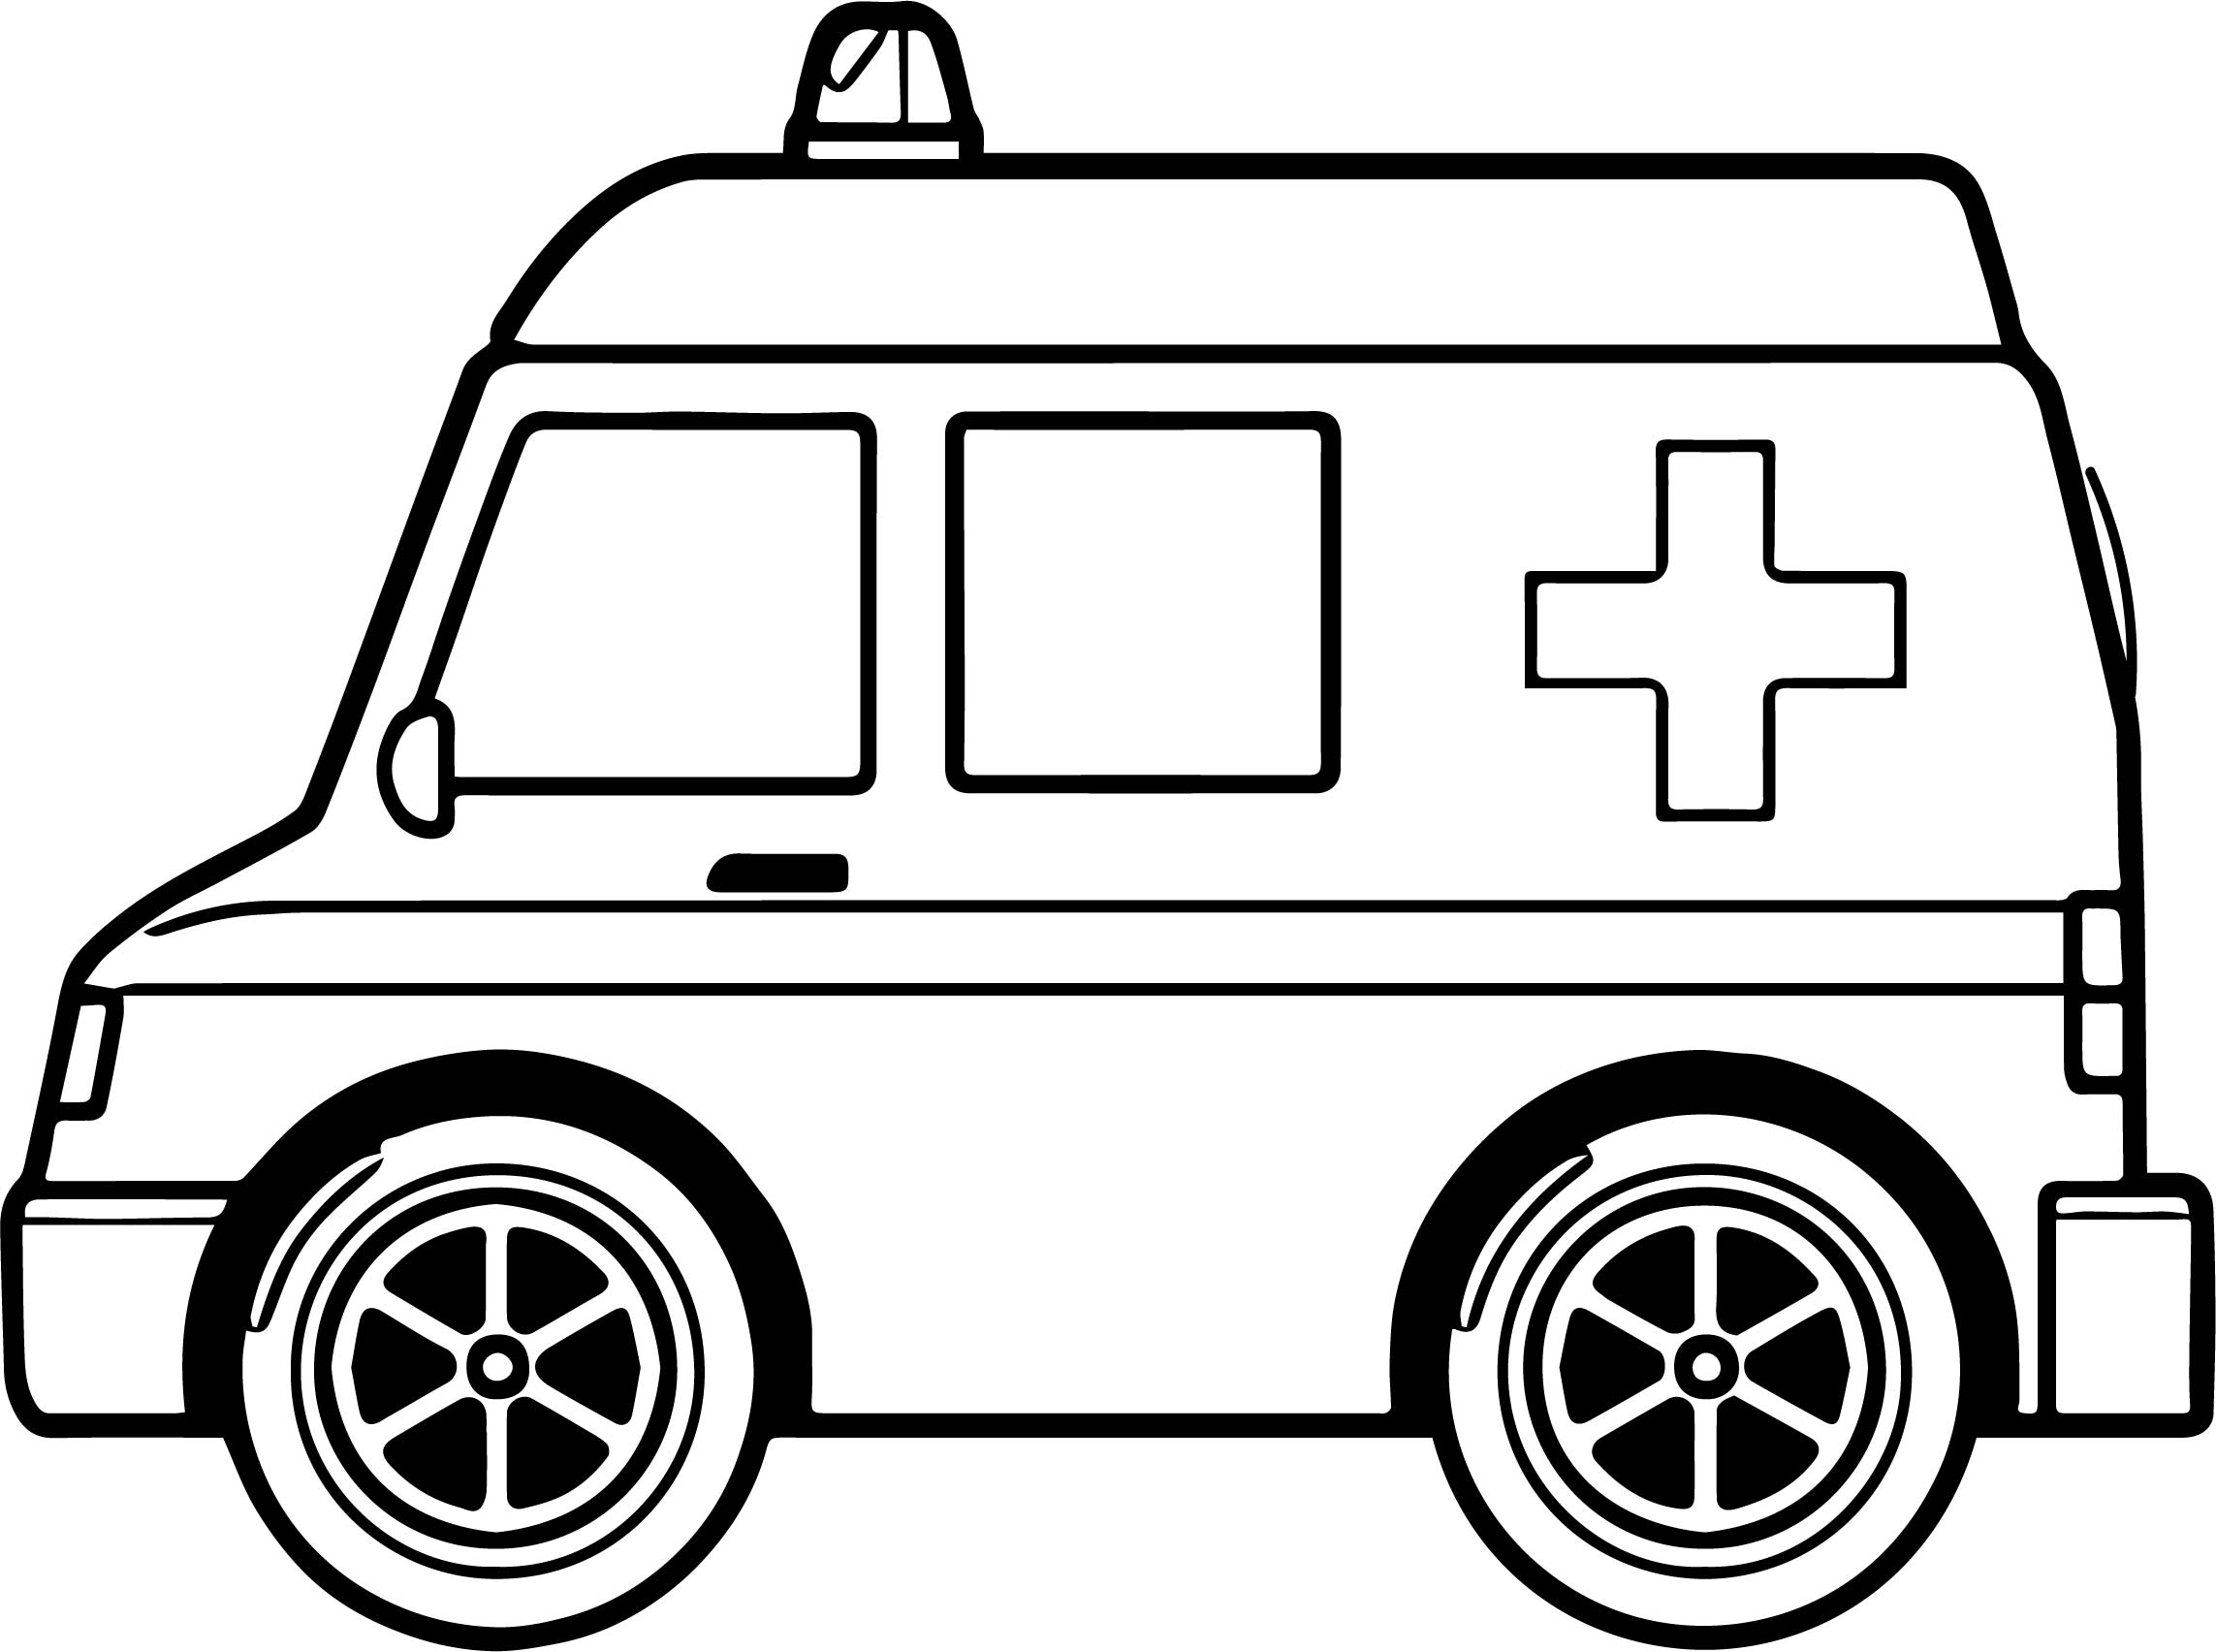 2286x1704 Ambulance Coloring Pages Murderthestout